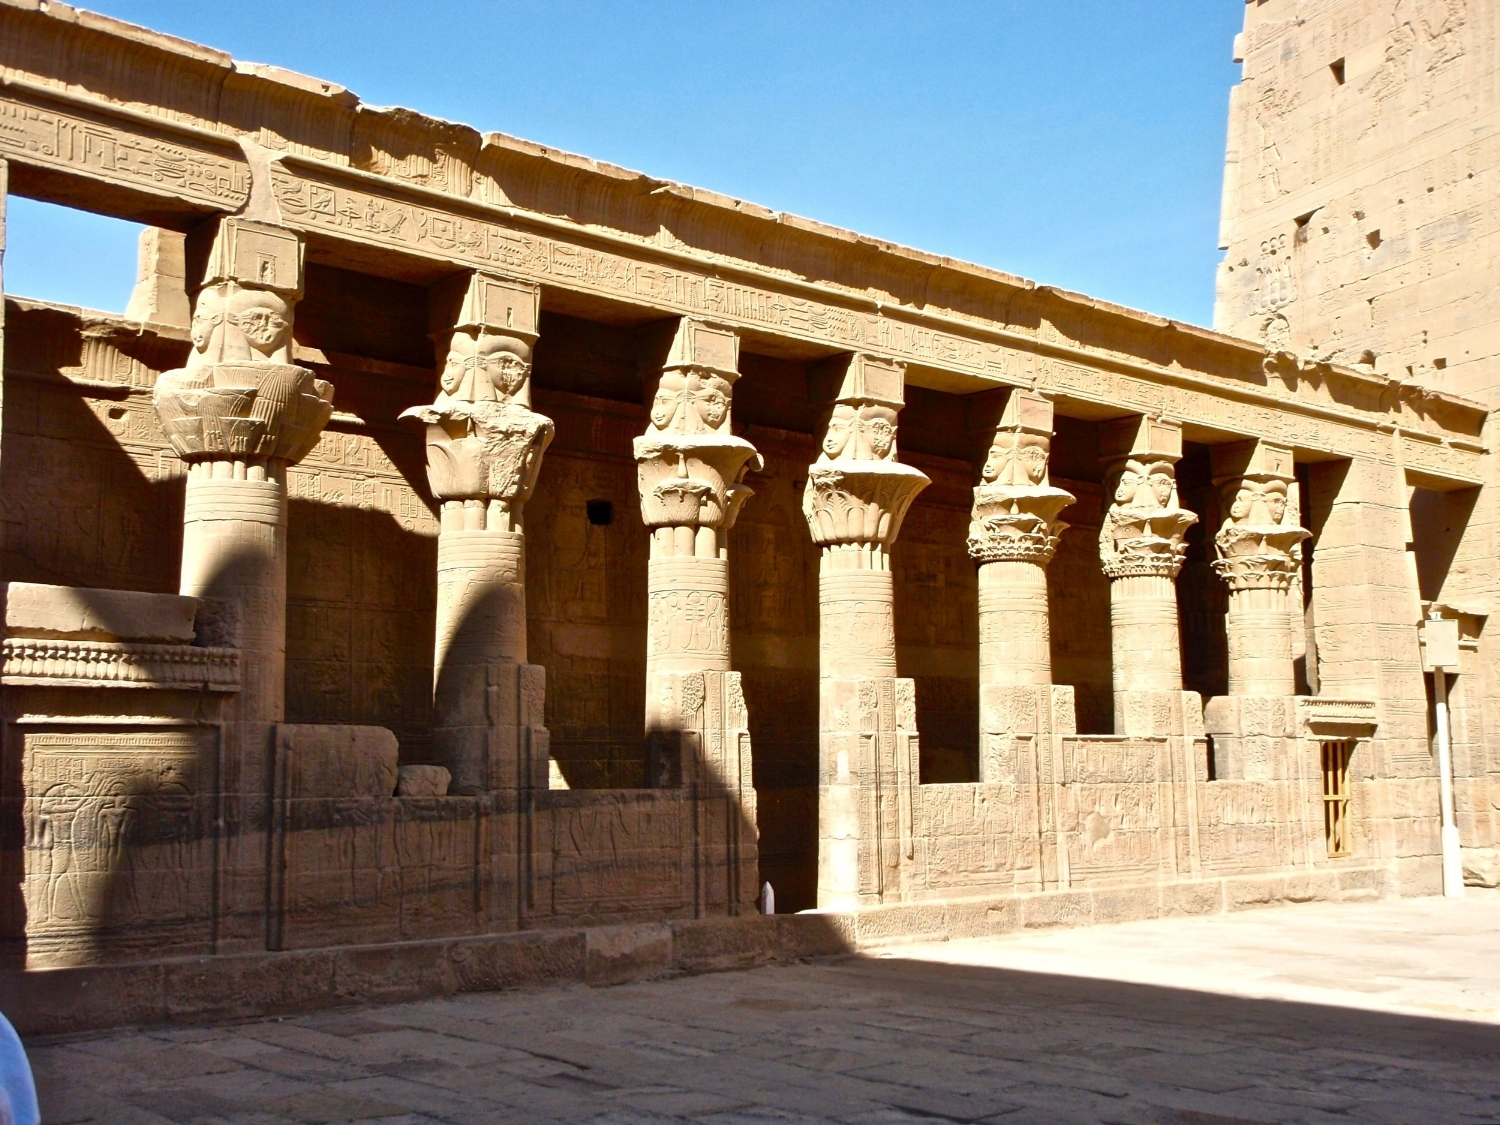 Hathor pillars in forecourt